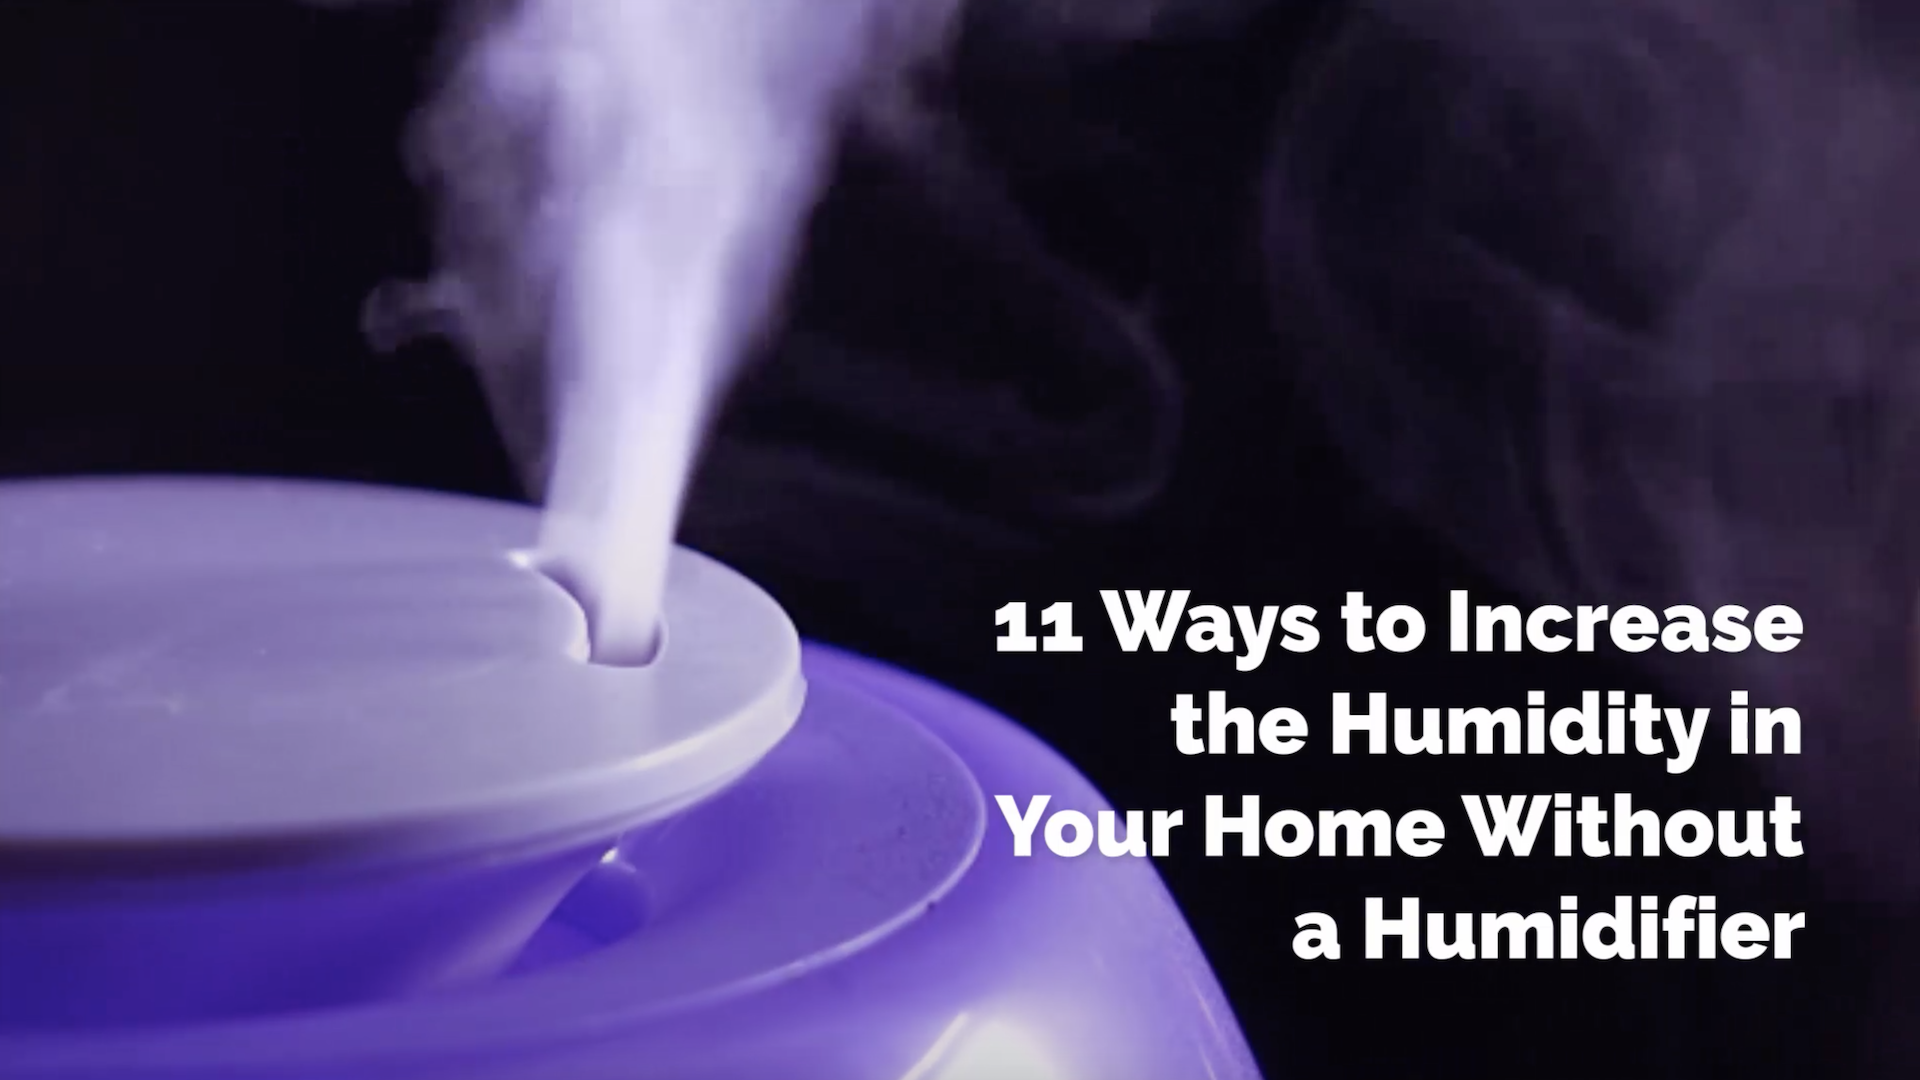 11 Diy Ways To Increase The Humidity In Your Home Simplemost